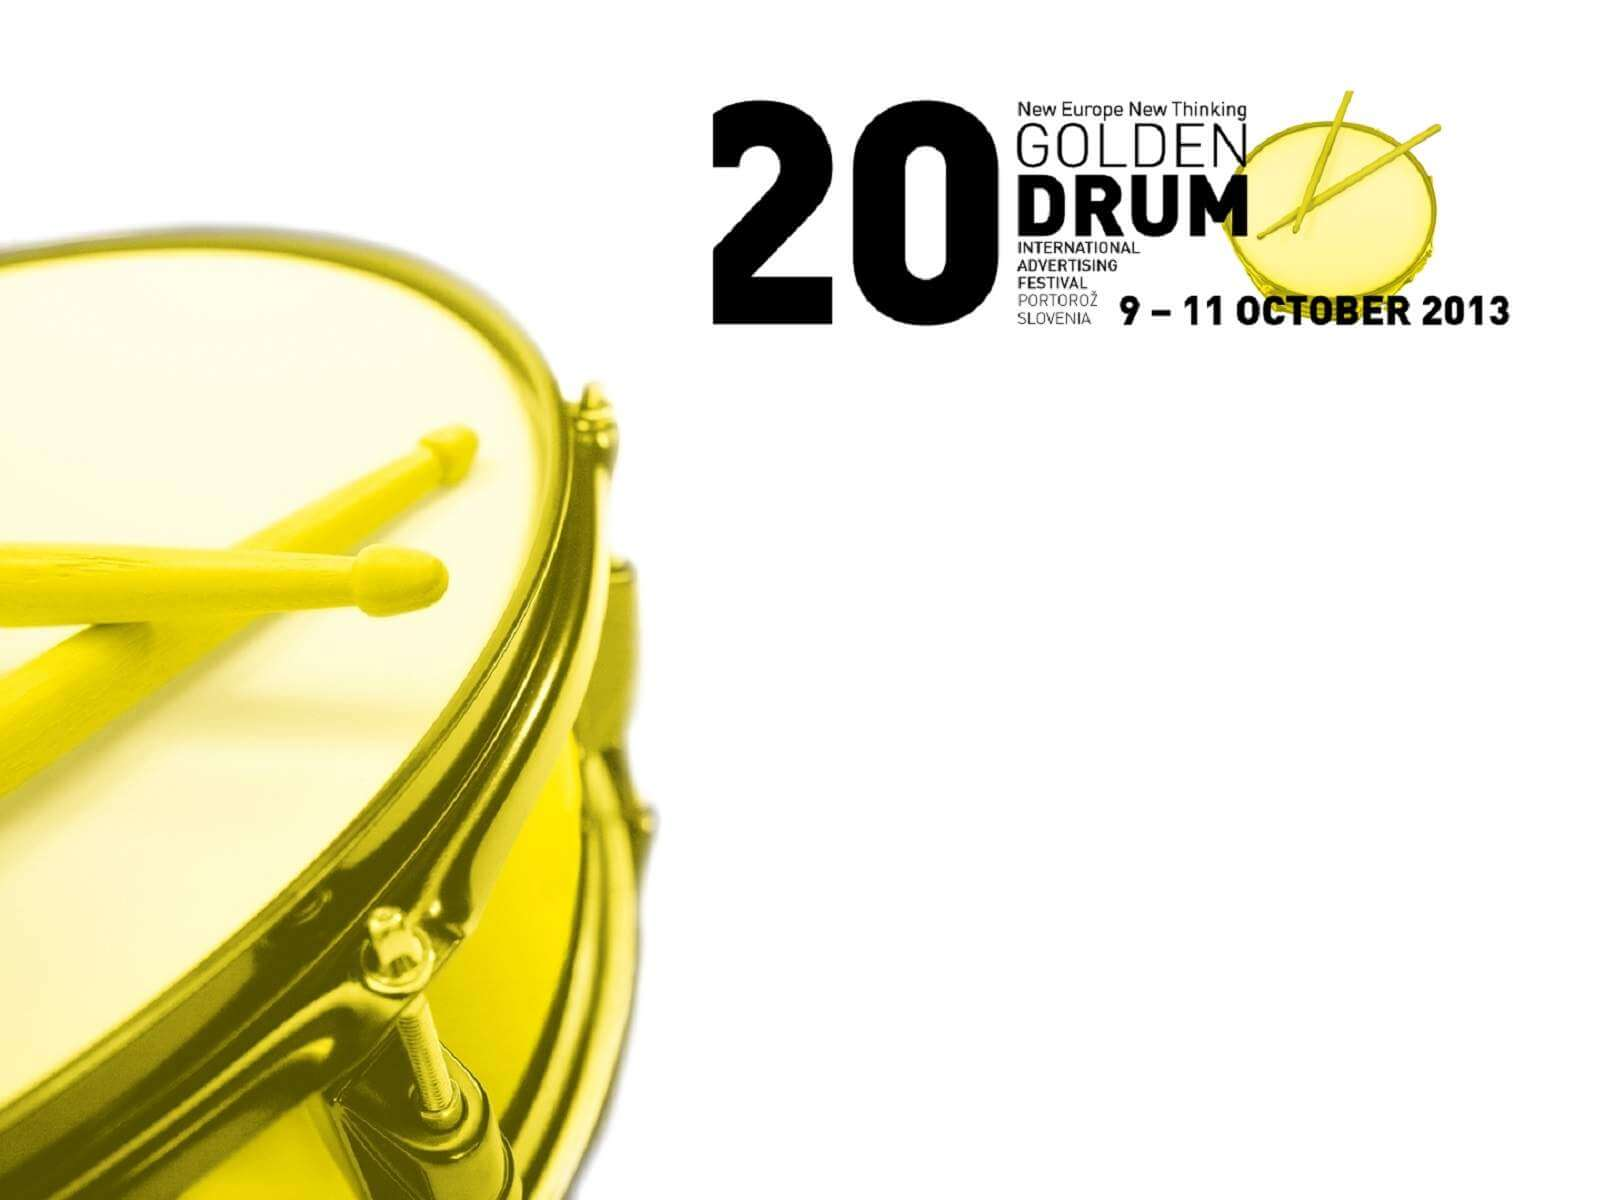 2015 Golden Drum